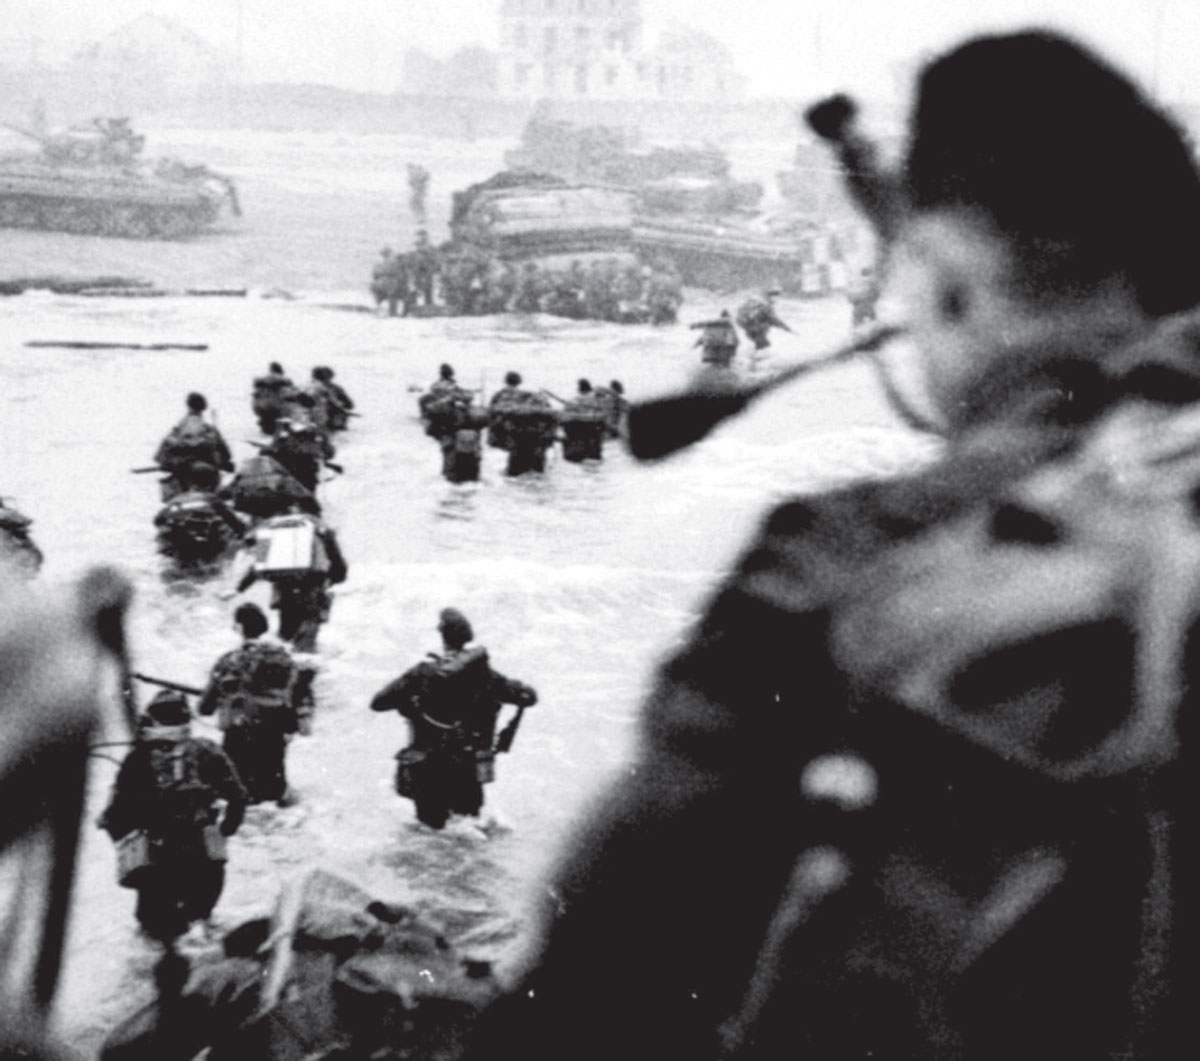 D-Day 70: It was the invasion of Europe. It will never be forgotten.